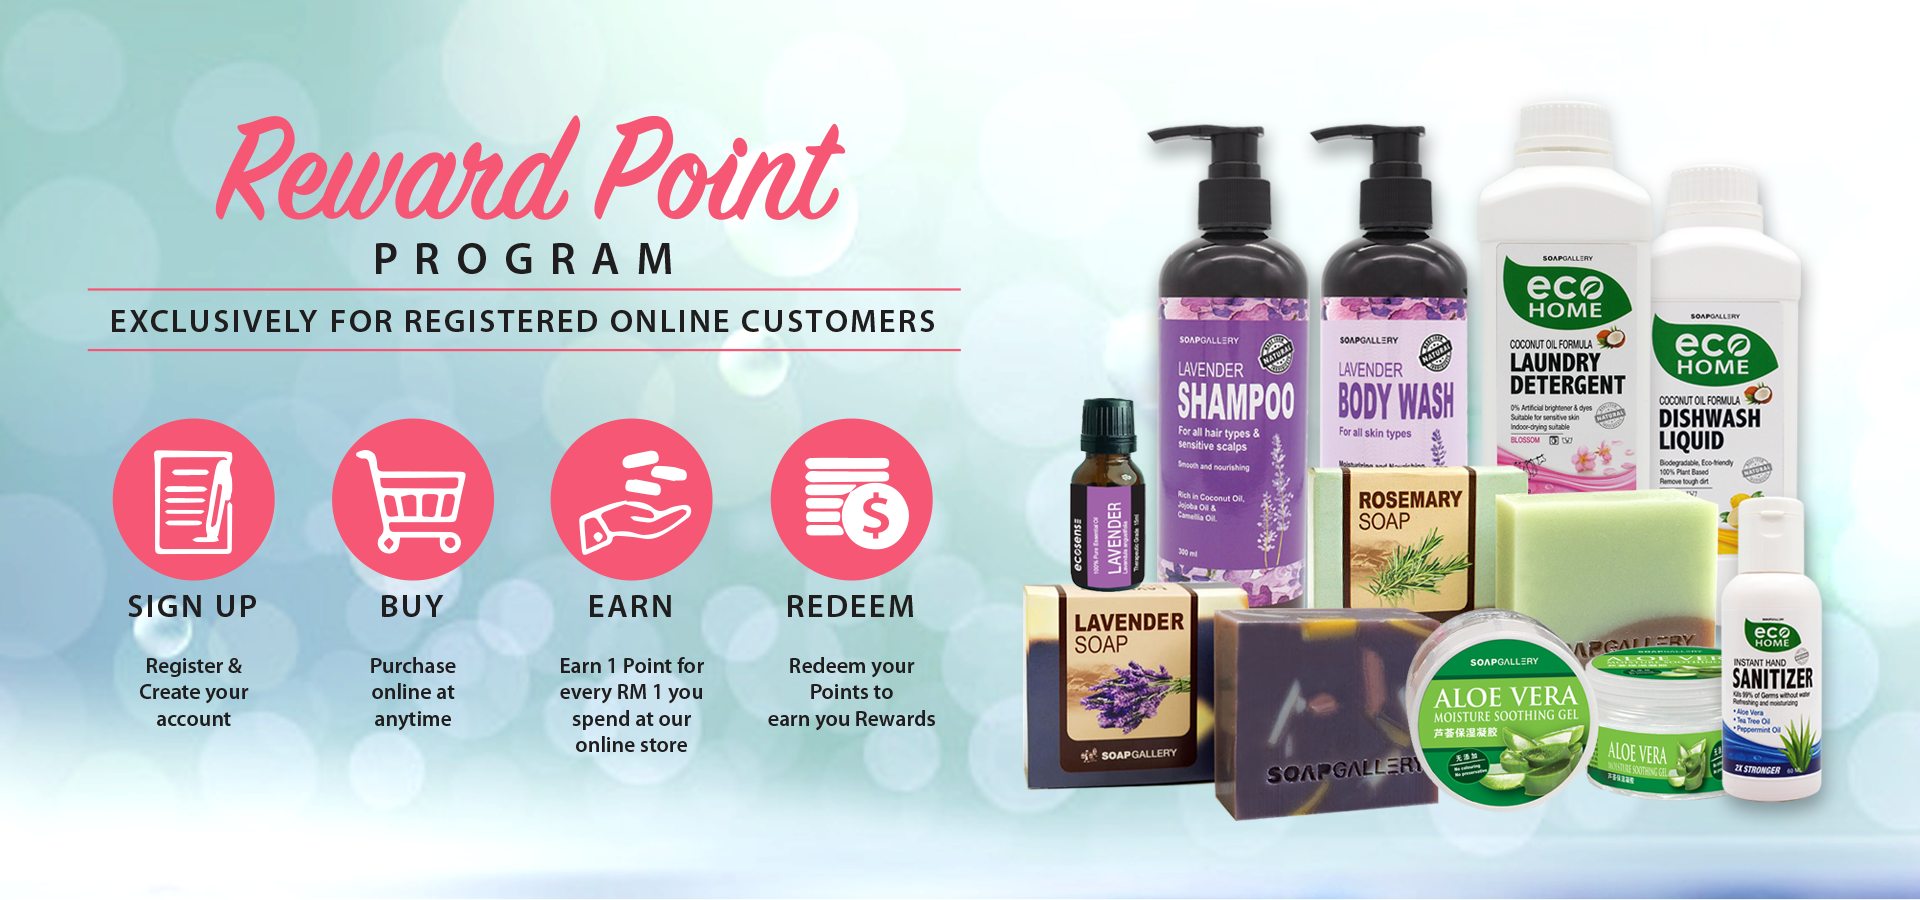 Soap Gallery Reward Point Program